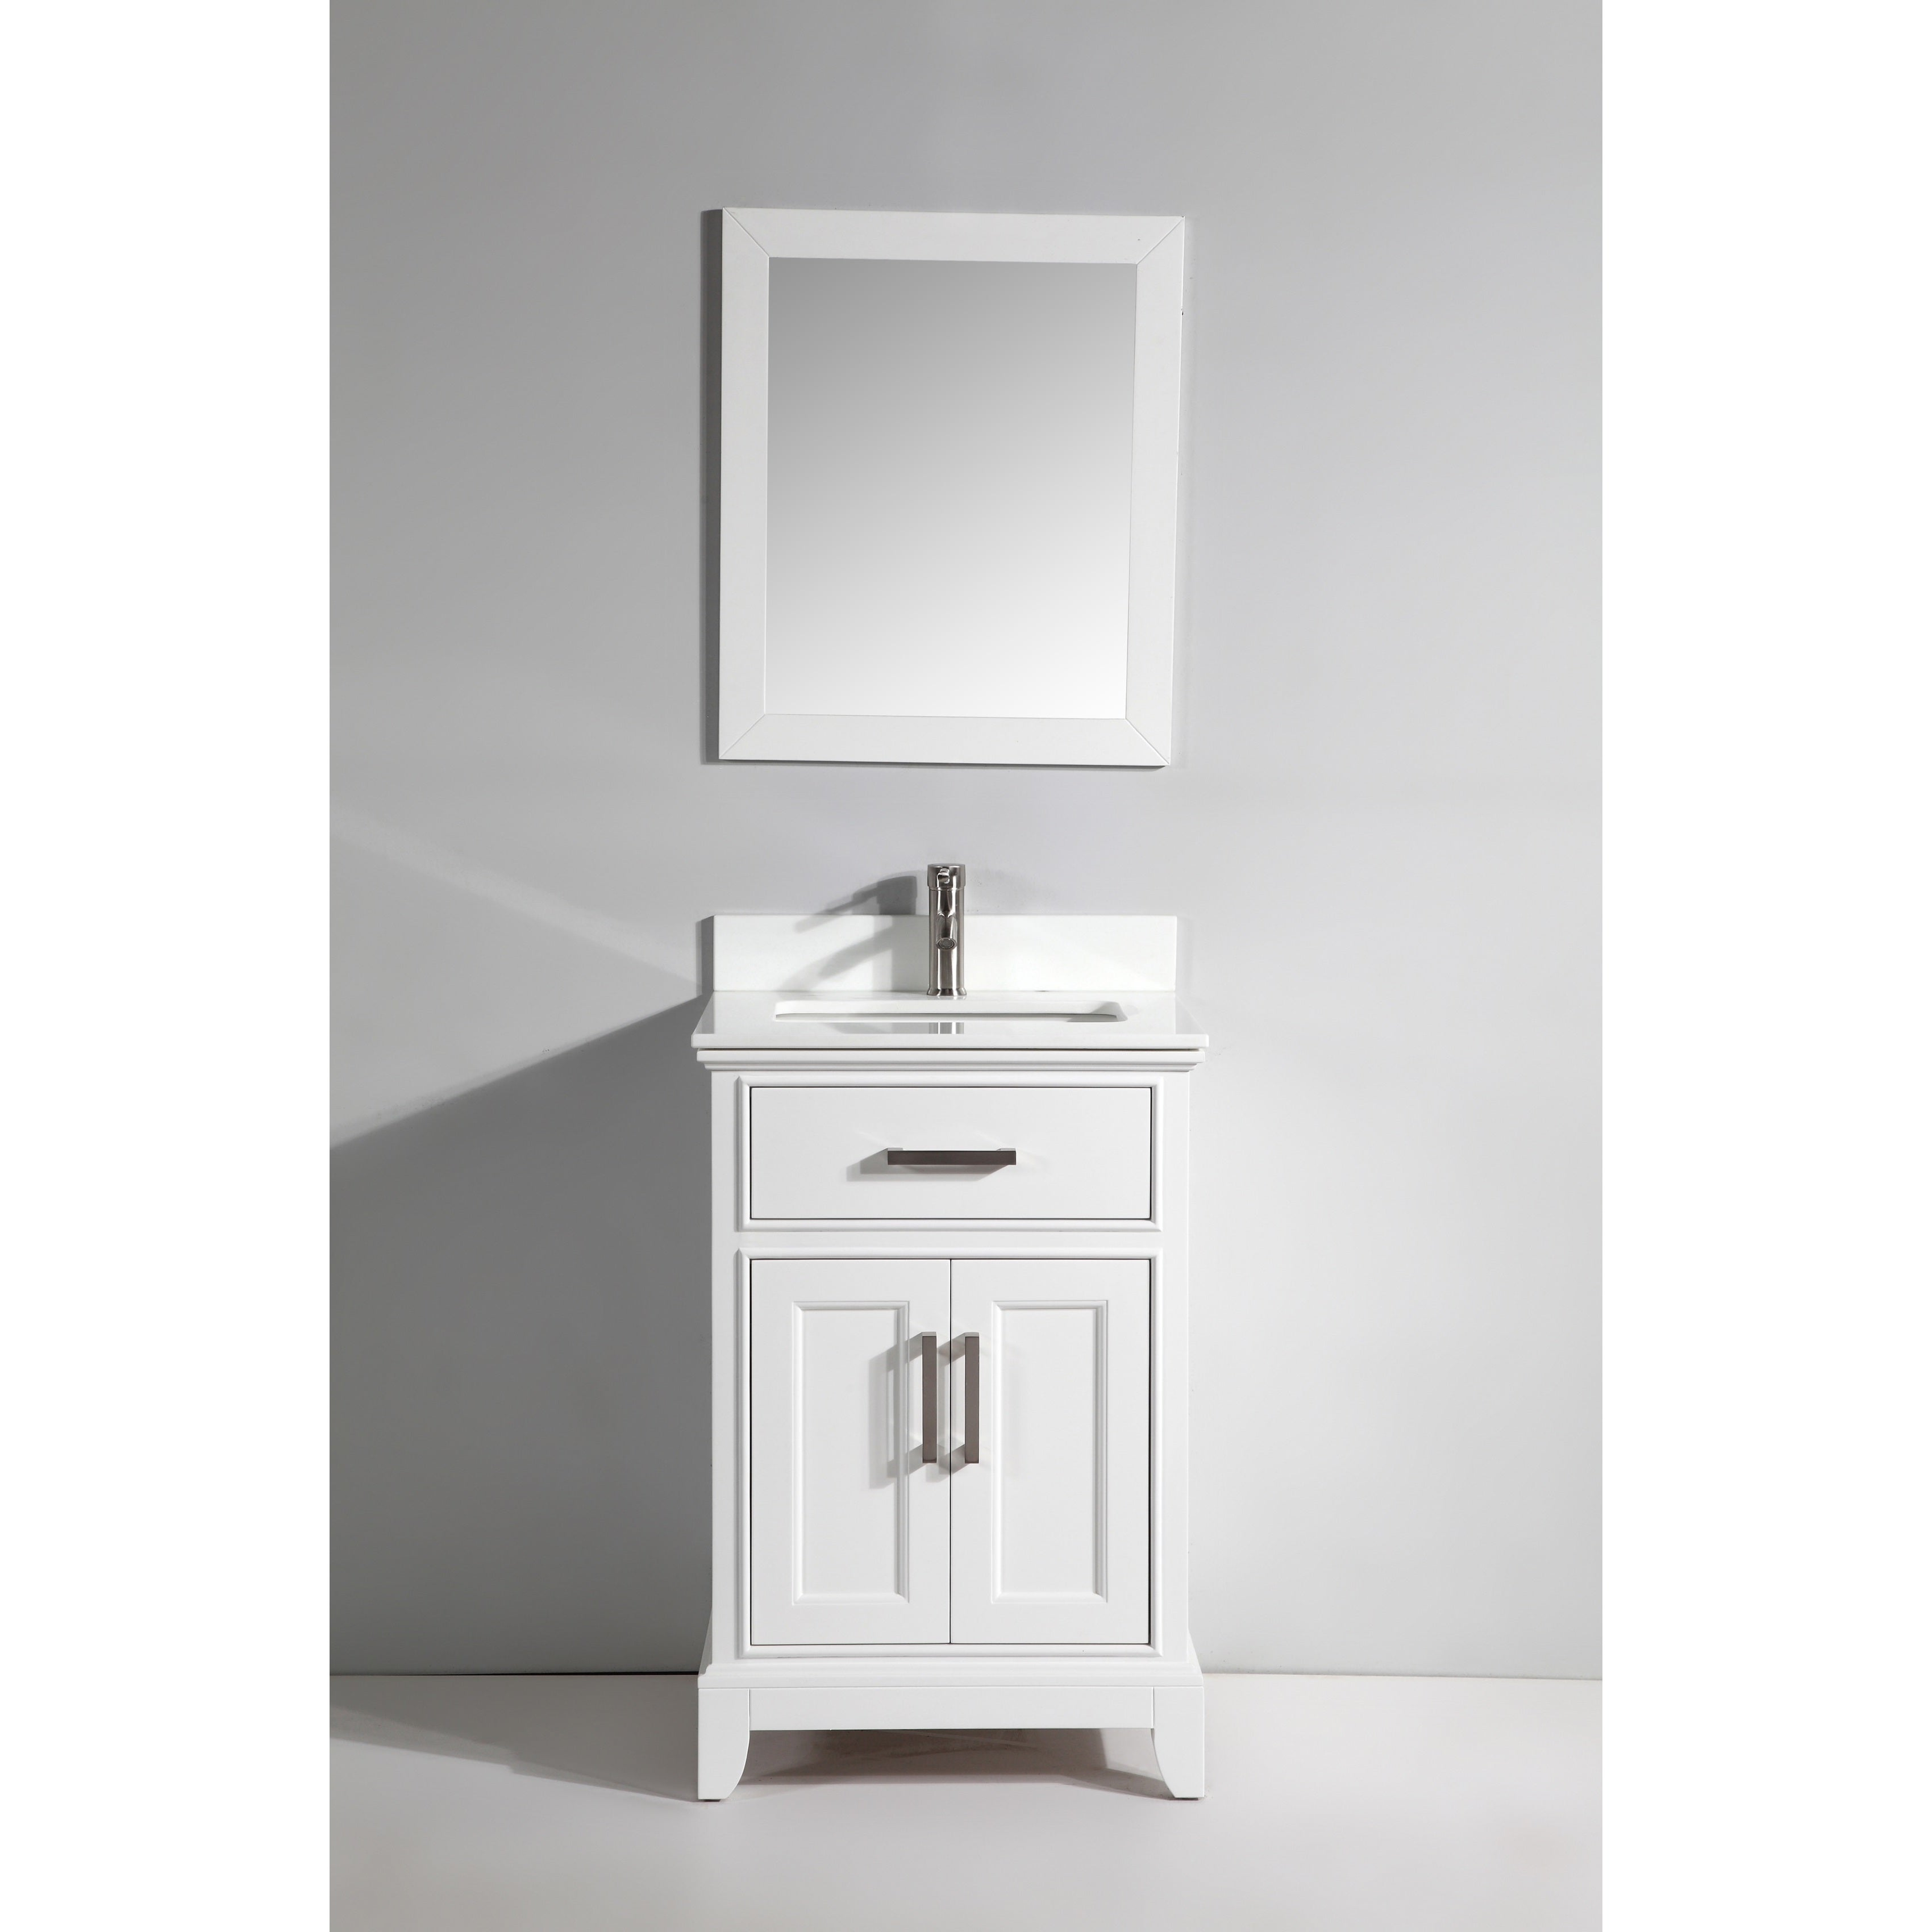 bathrooms cabinets single bathroom small vanity sets glass for sink affordable wood inch with vanities